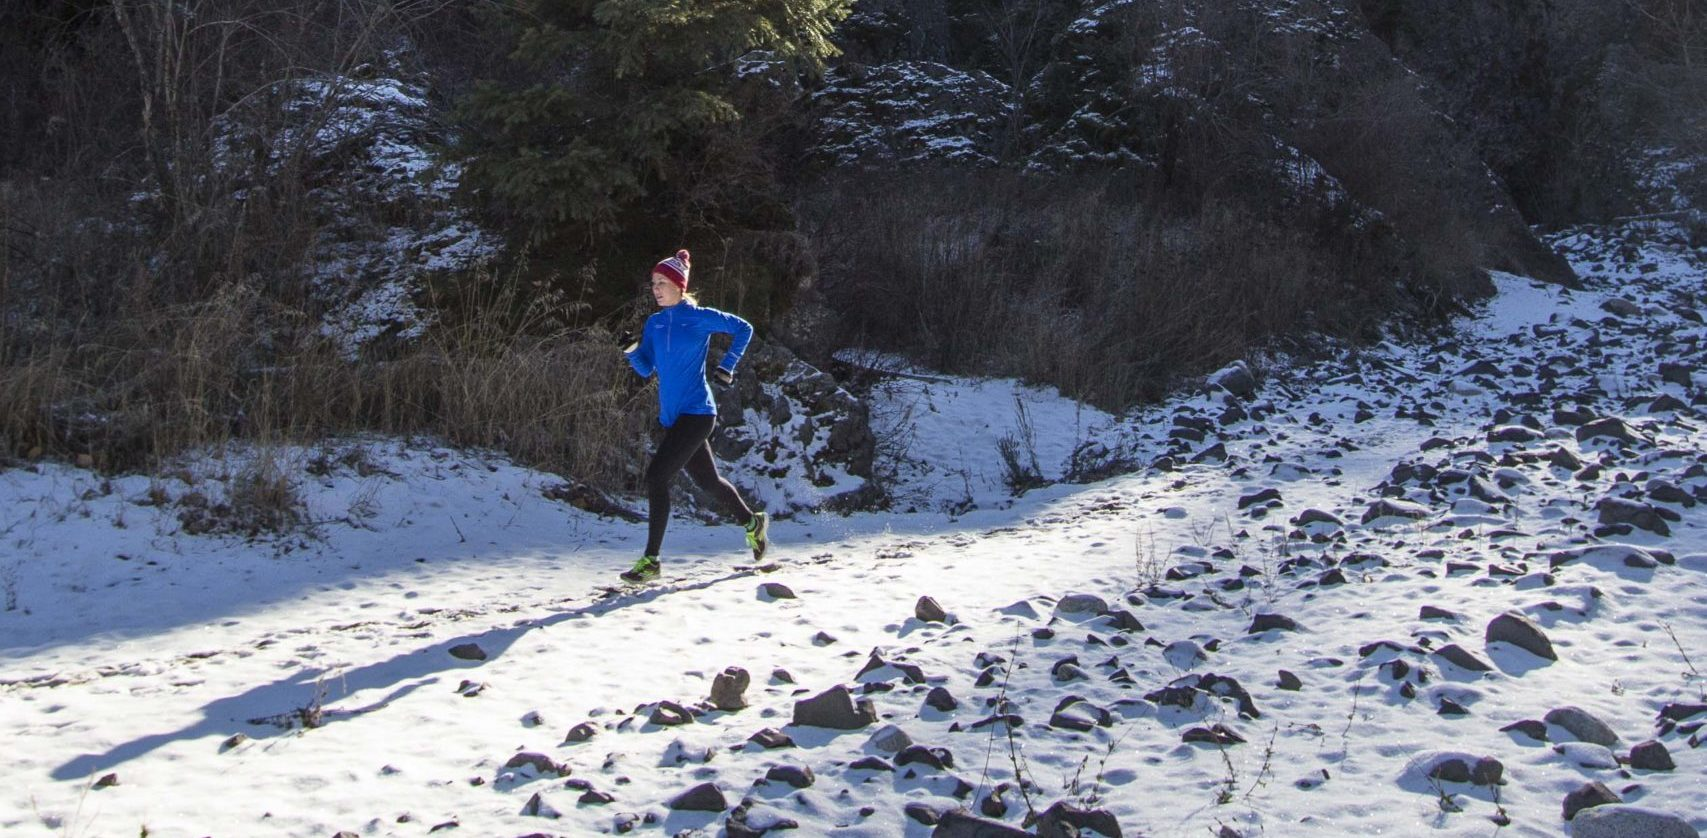 A person running though snowy rocks.